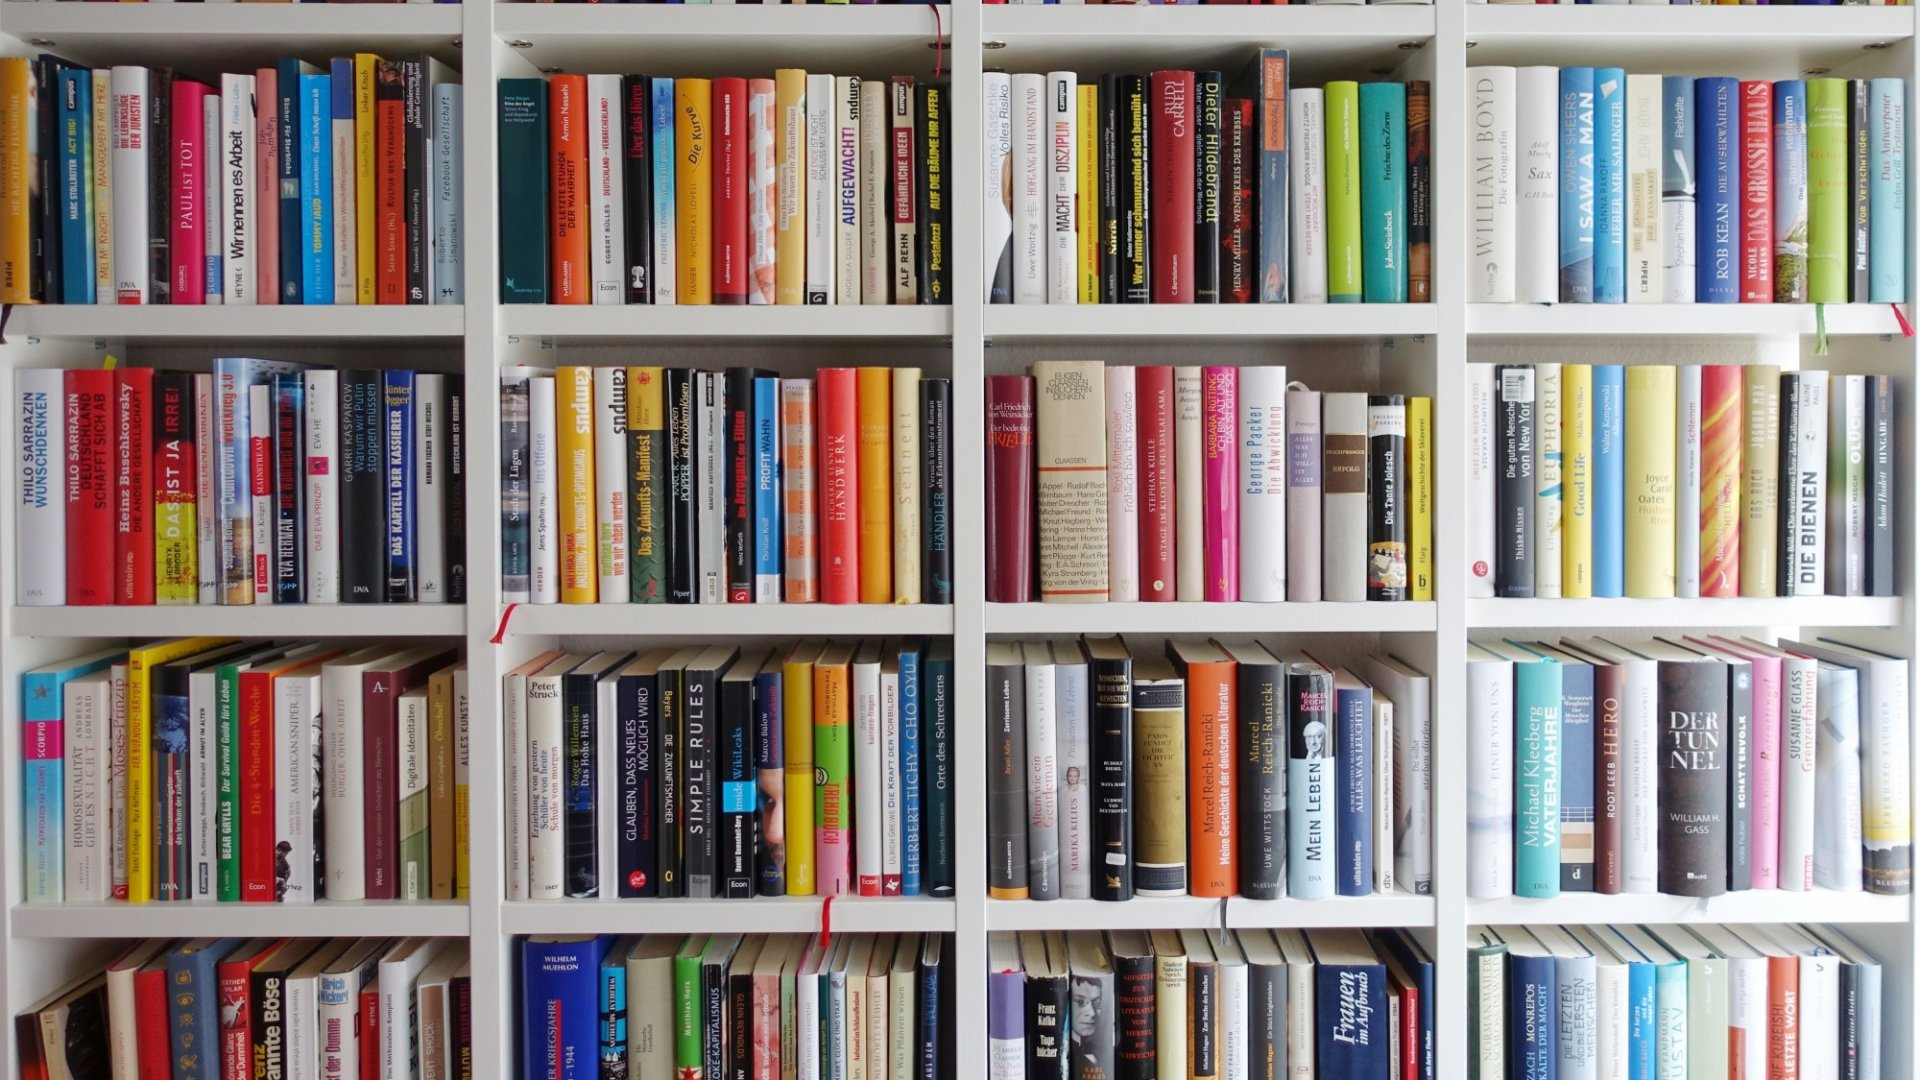 Why Reading Books Should Be Your Priority, According to Science